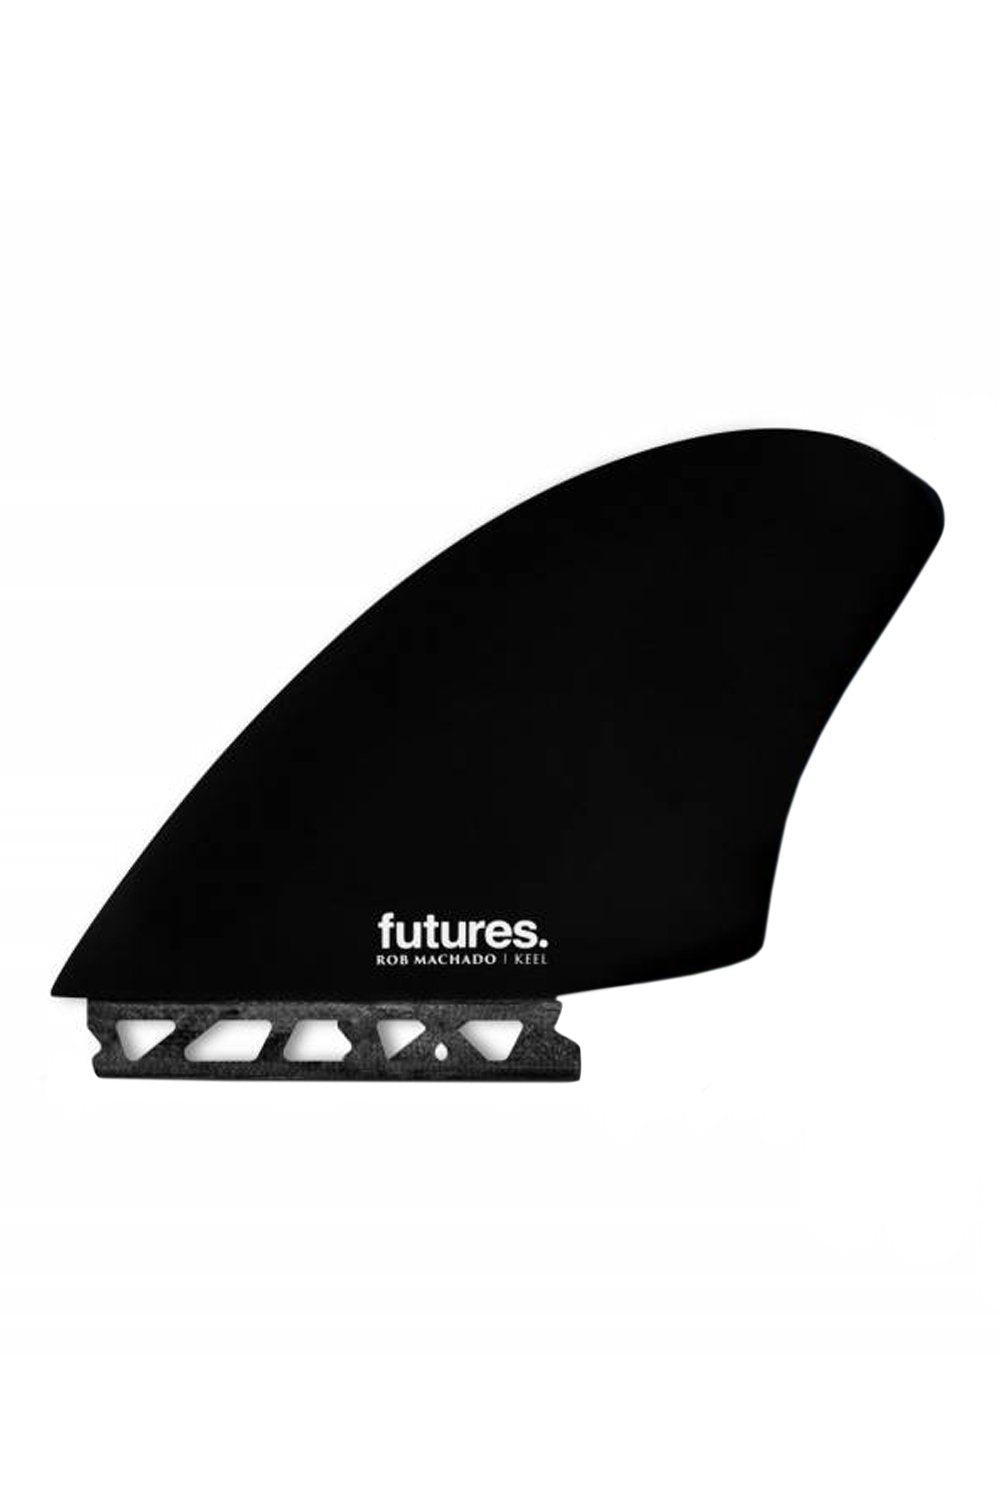 Futures Machado HC Keel Twin Fin